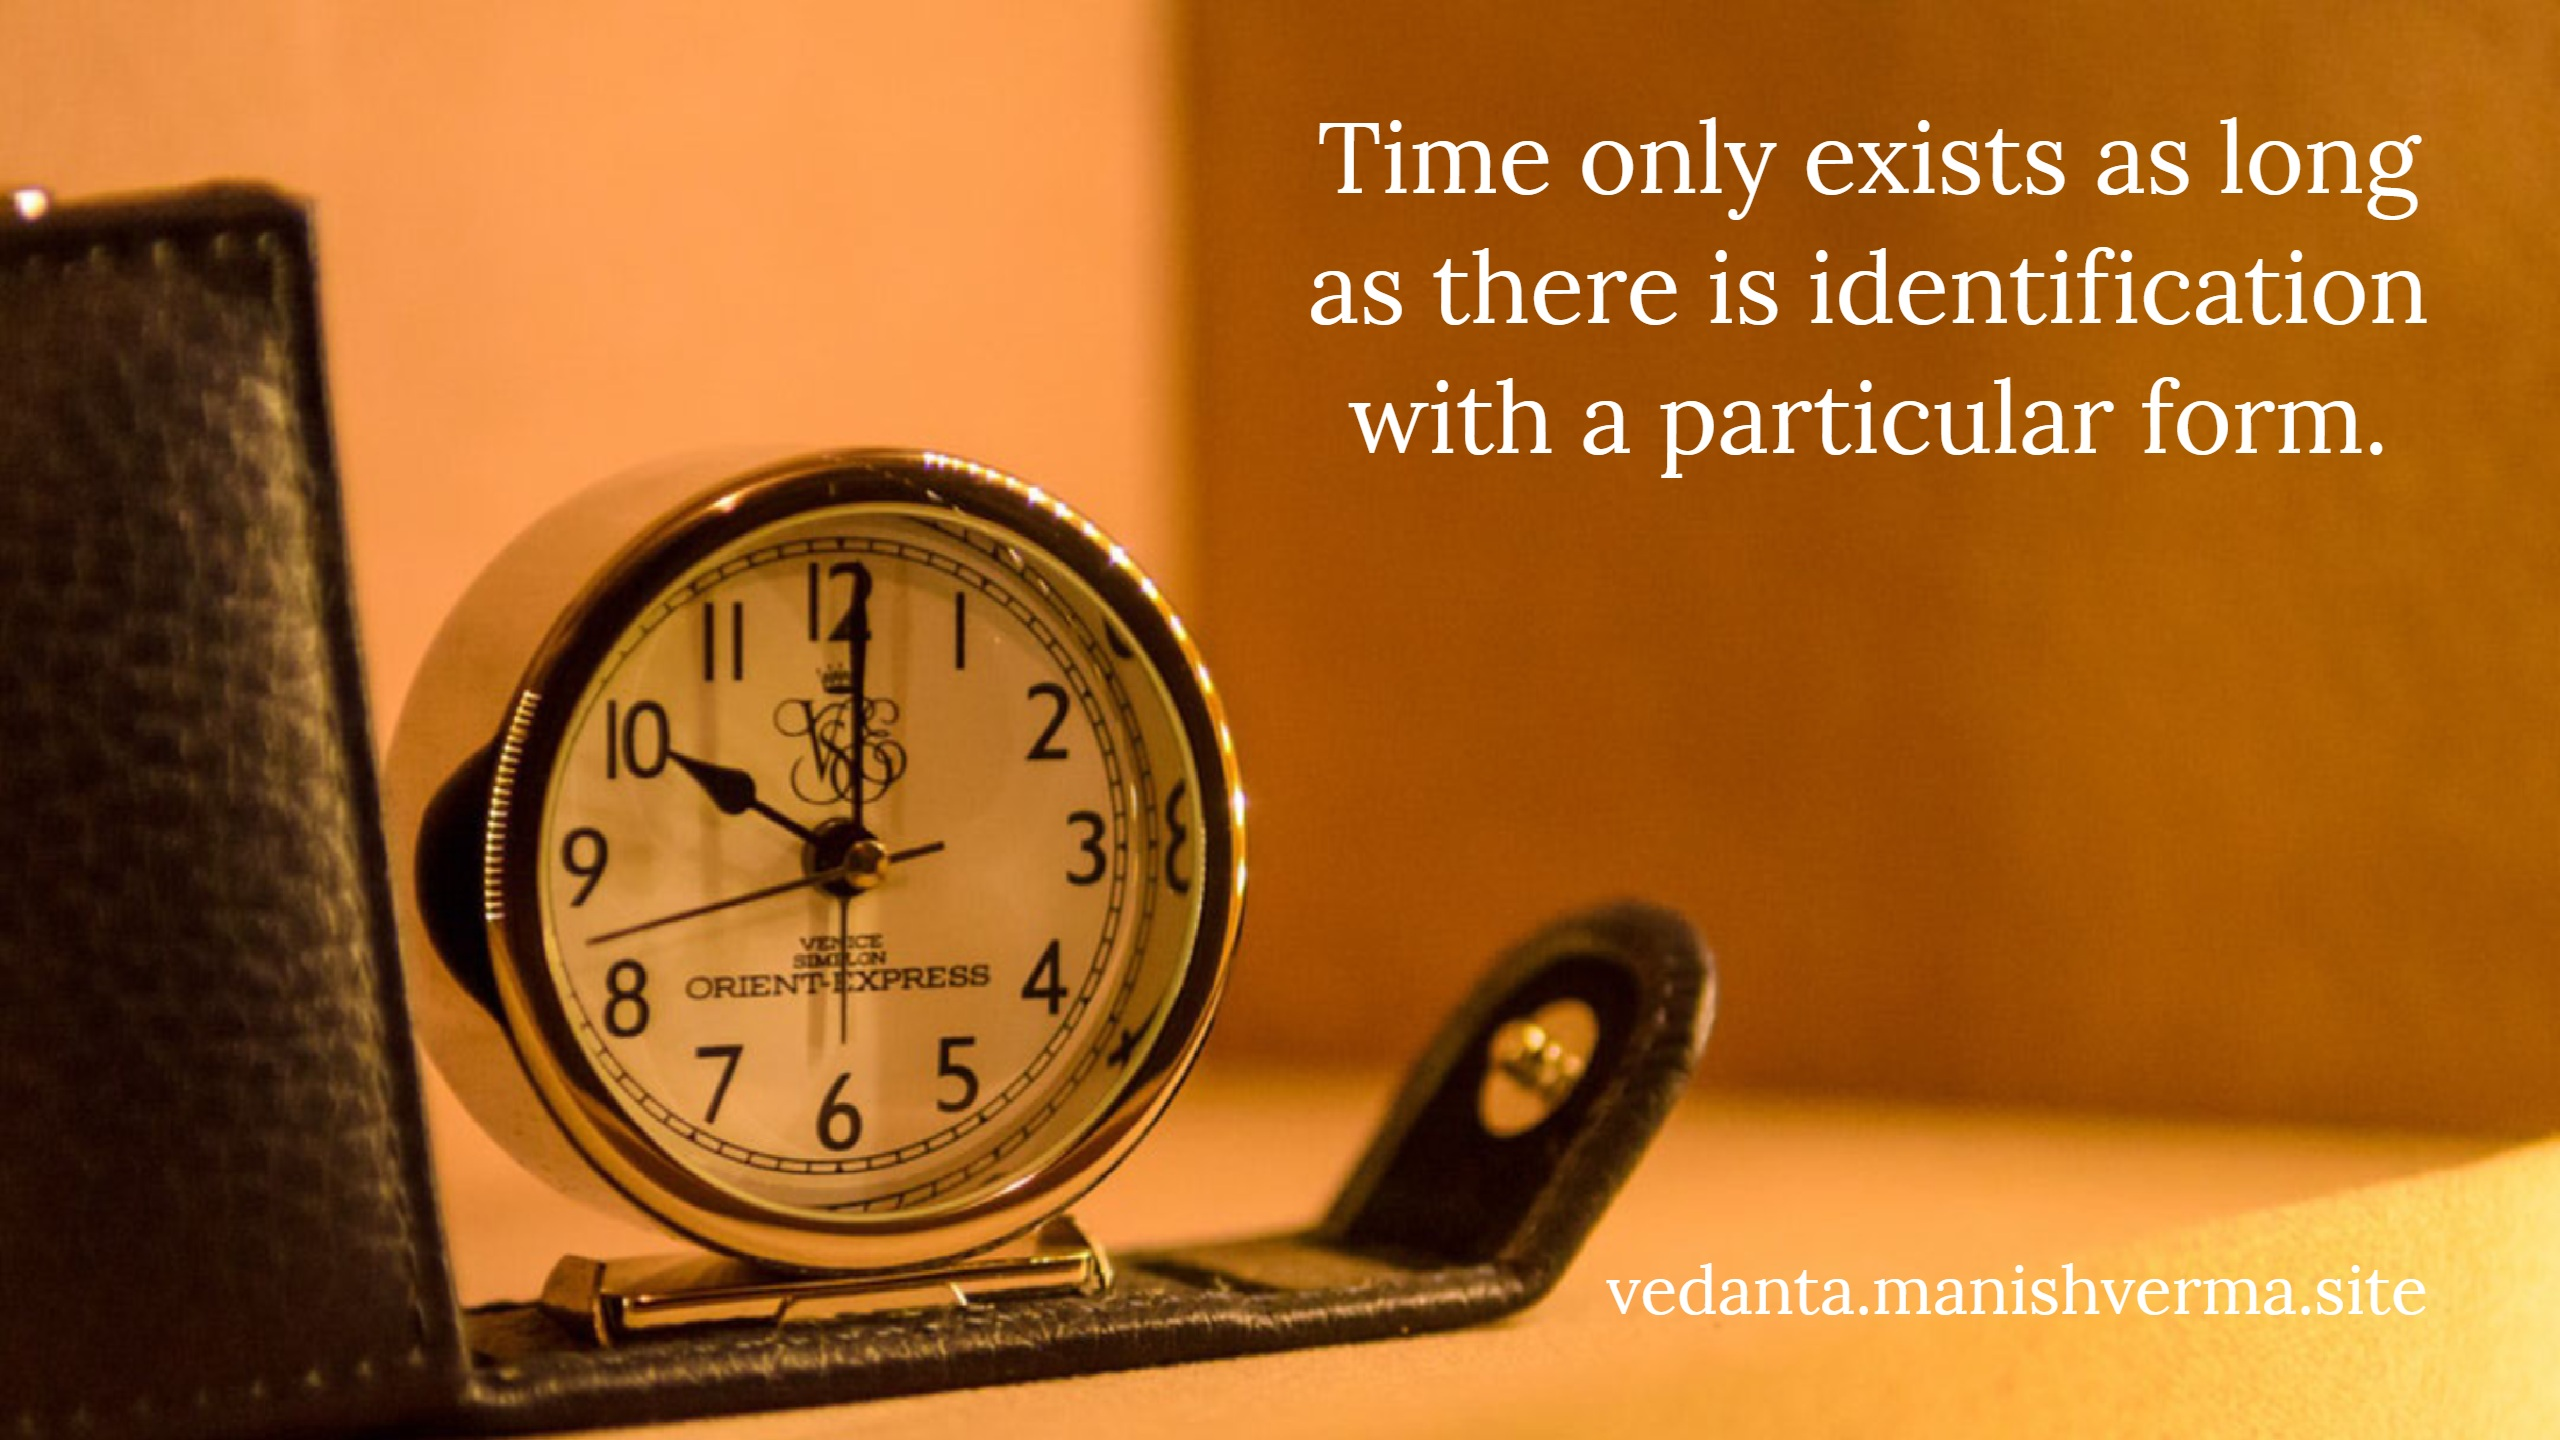 Time only exists as long as there is identification with a particular form.